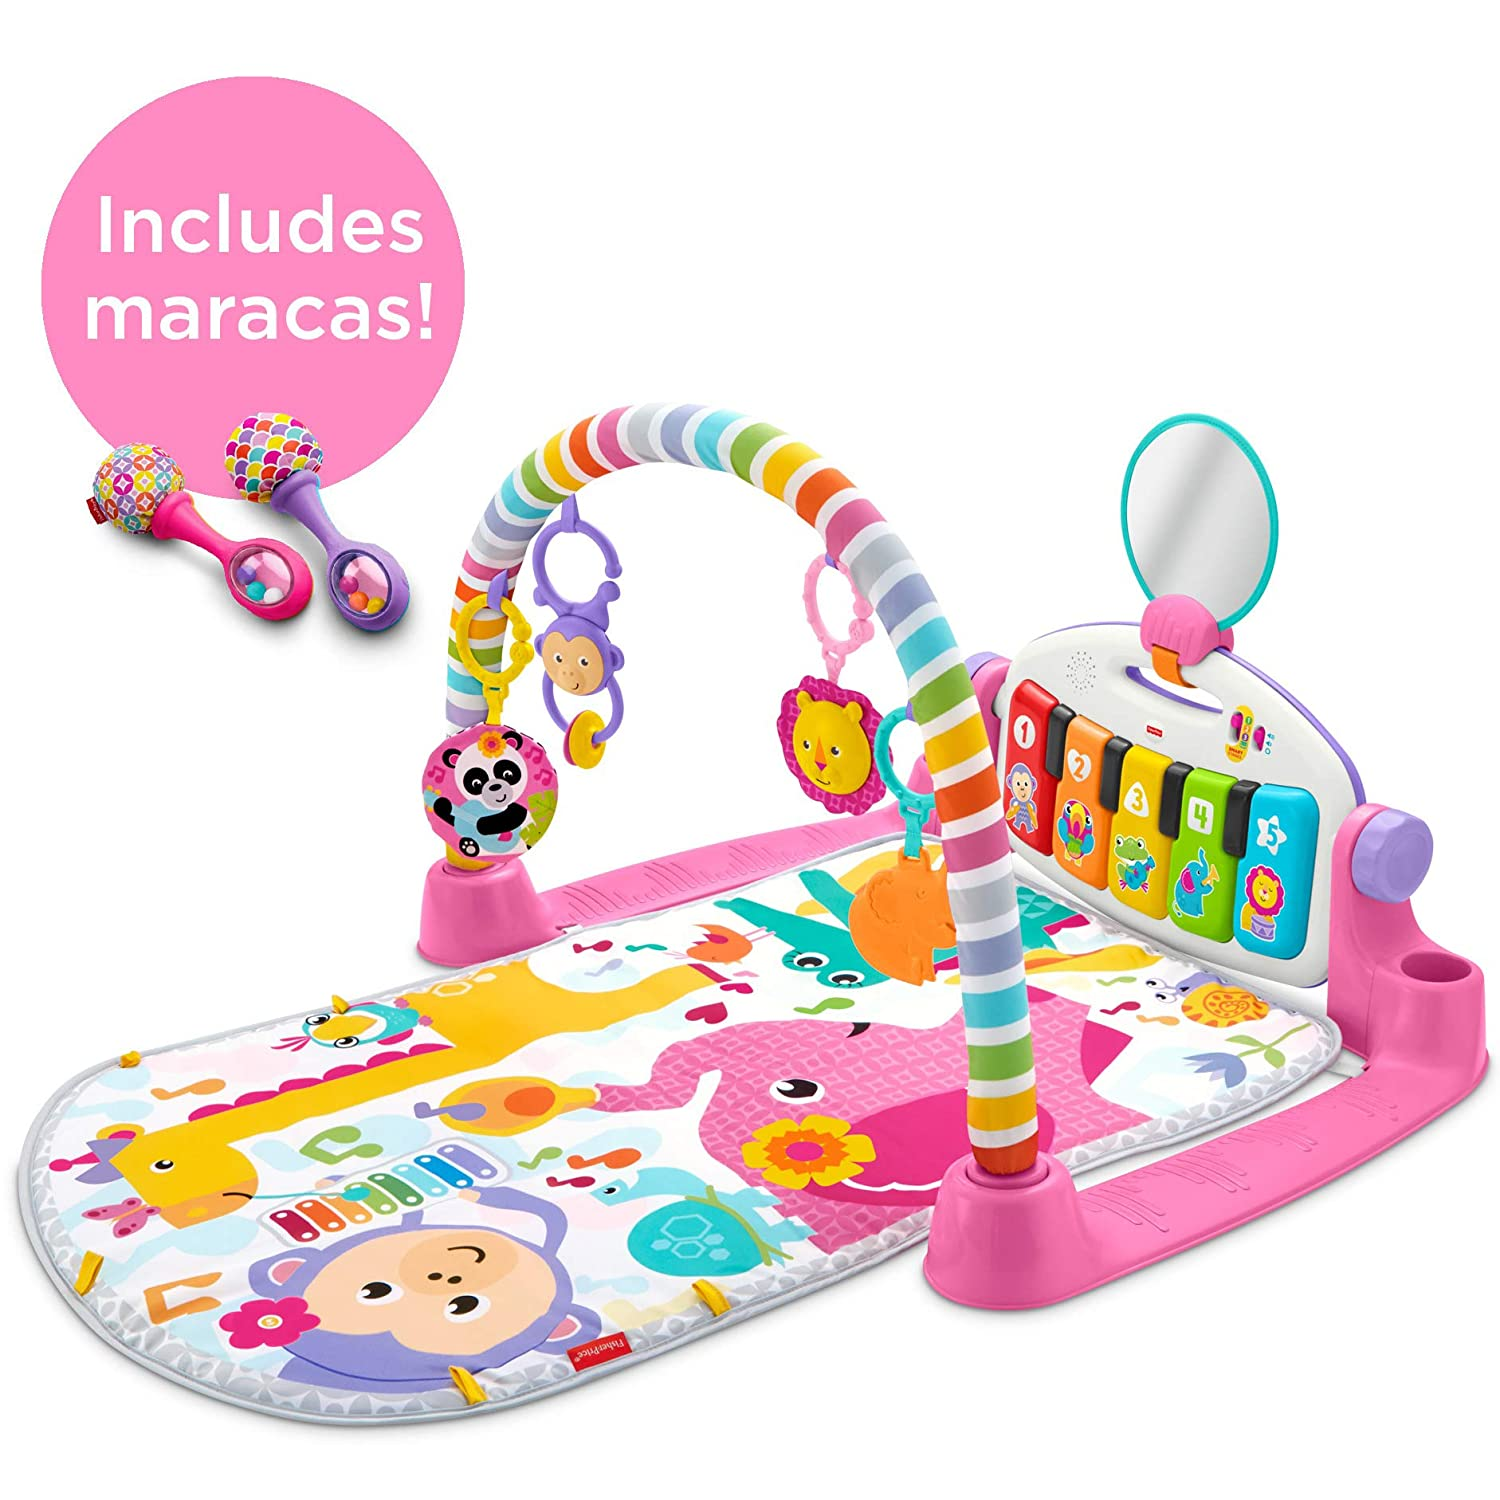 Fisher-Price Deluxe Kick 'n Play Piano Gym & Maracas [Amazon Exclusive] Fisher-Price Baby GDD08